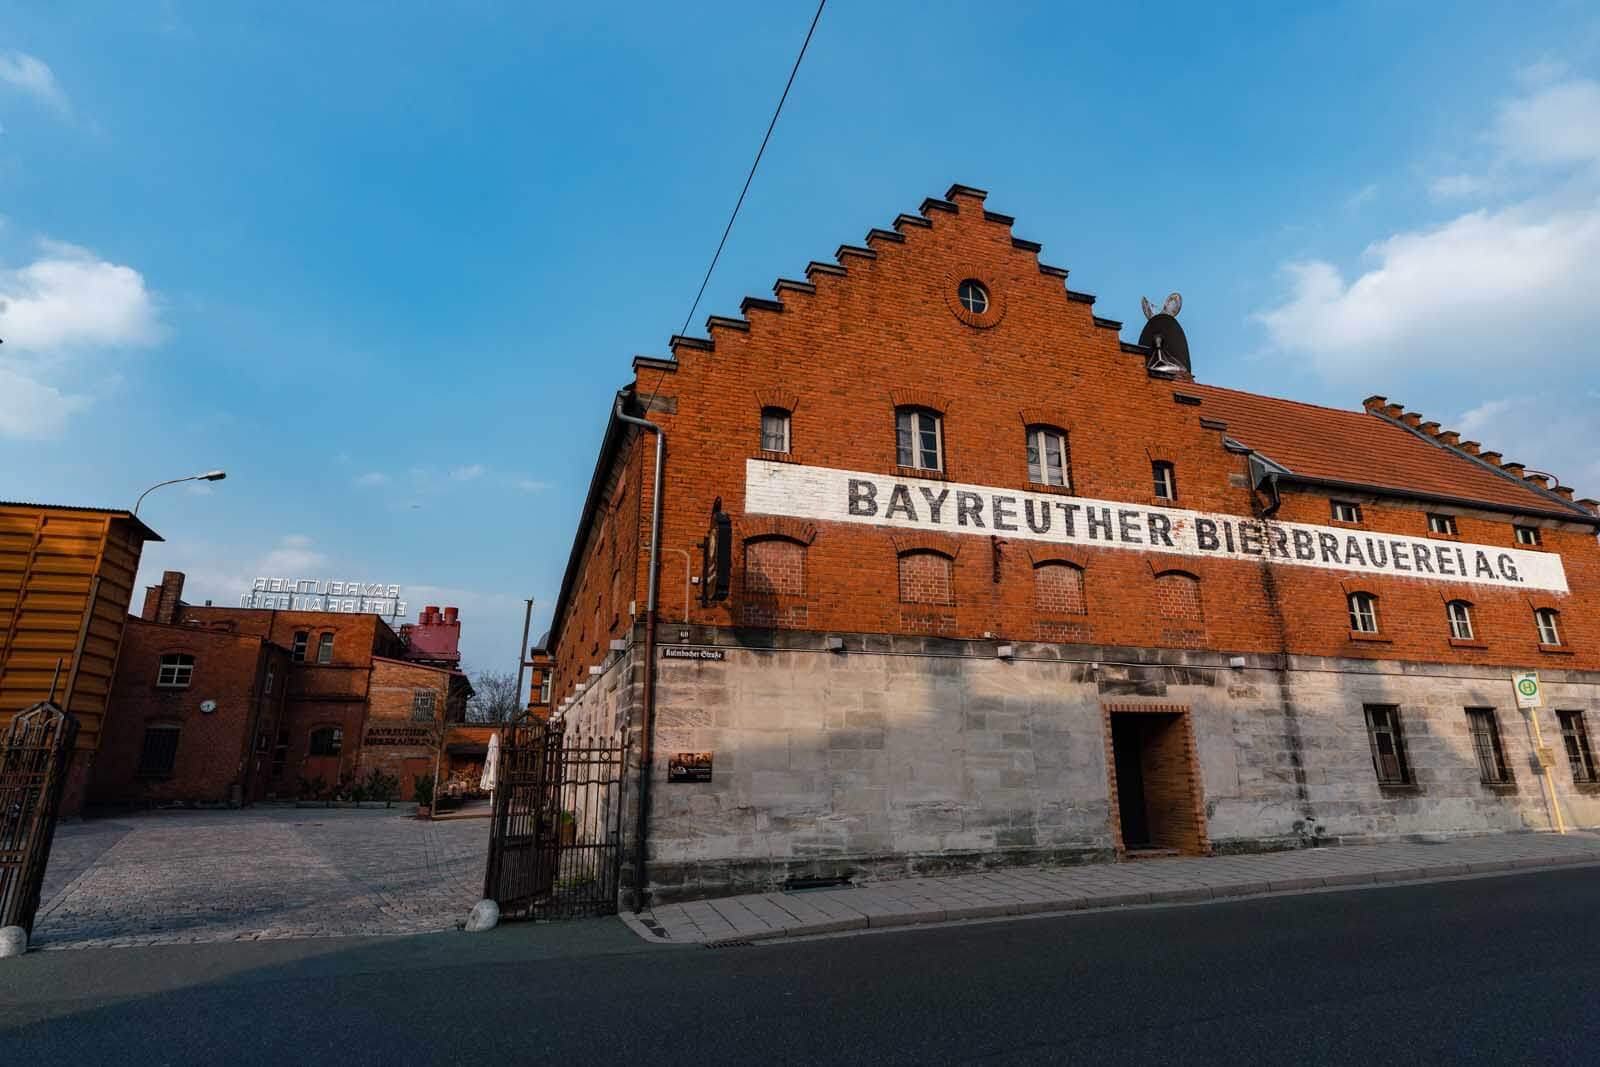 Bayreuther Brewery in Bayreuth Germany